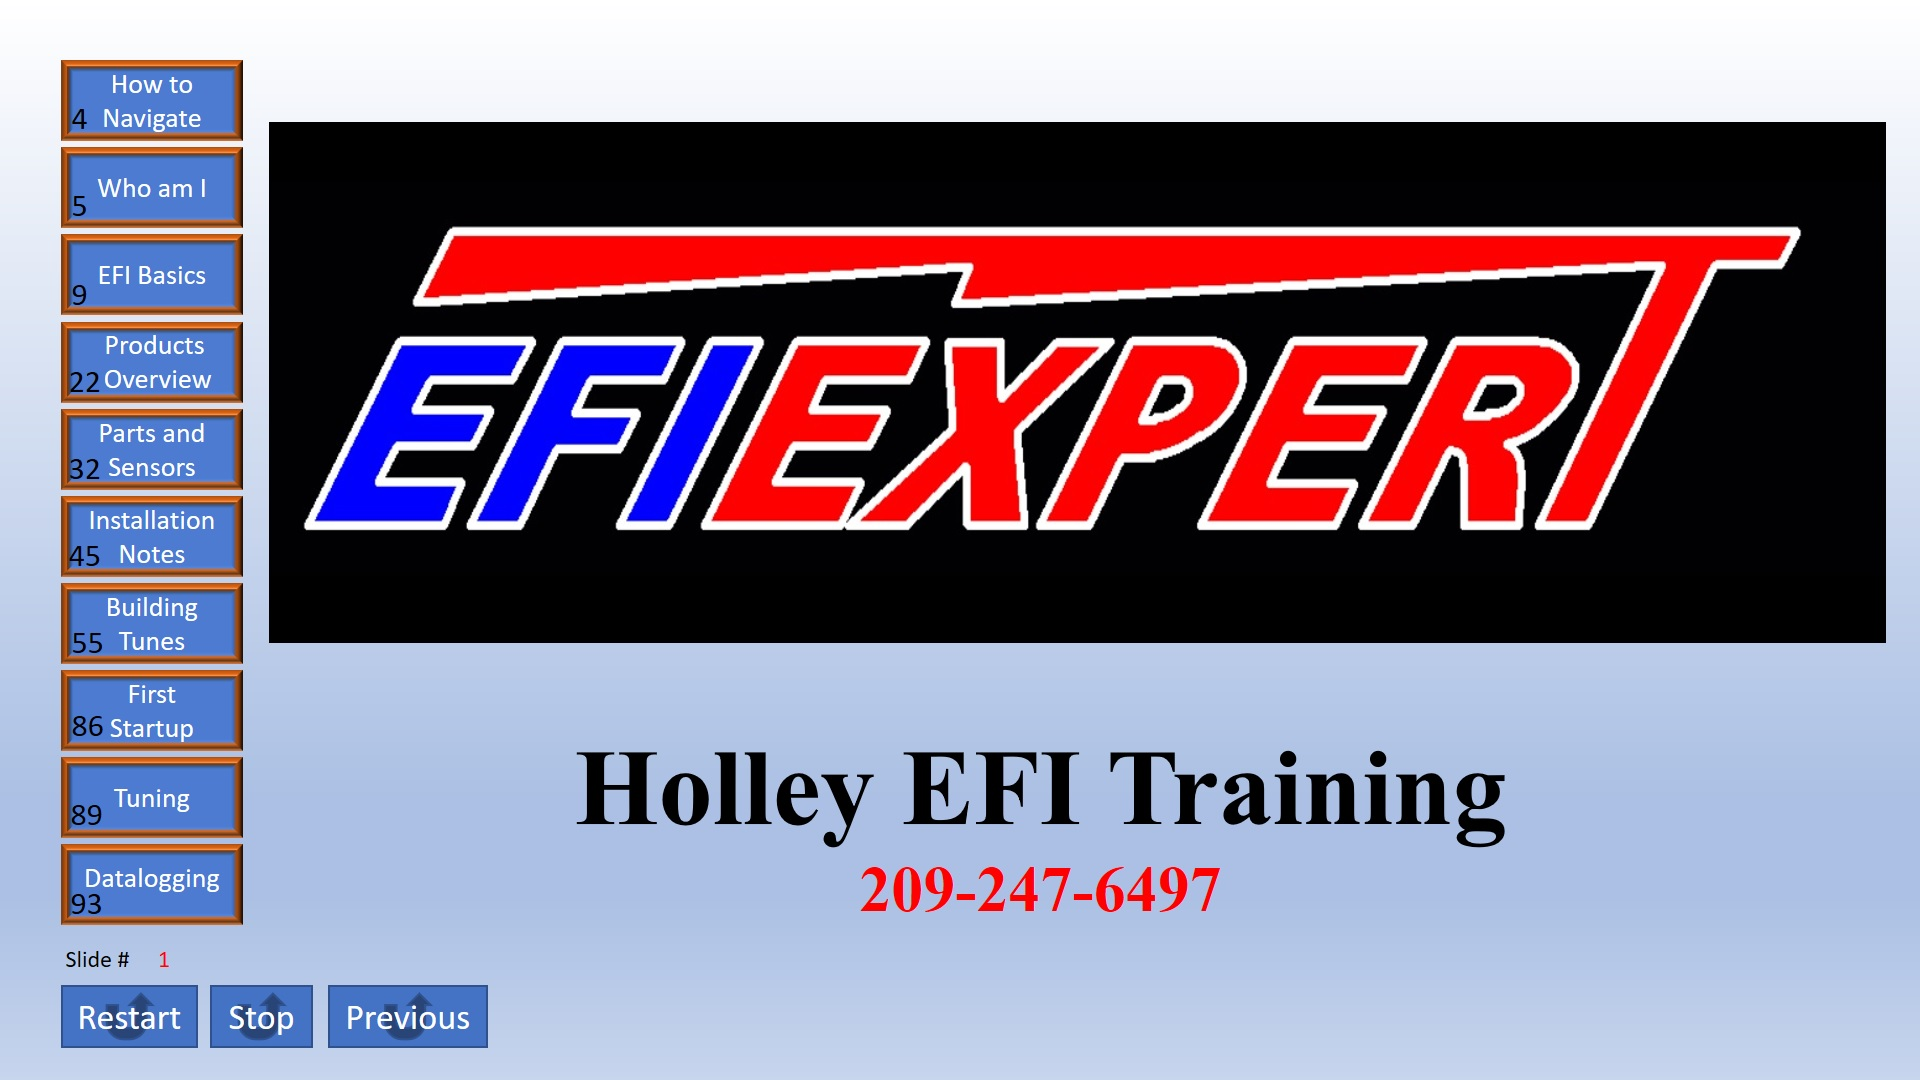 Holley EFI ONLINE training